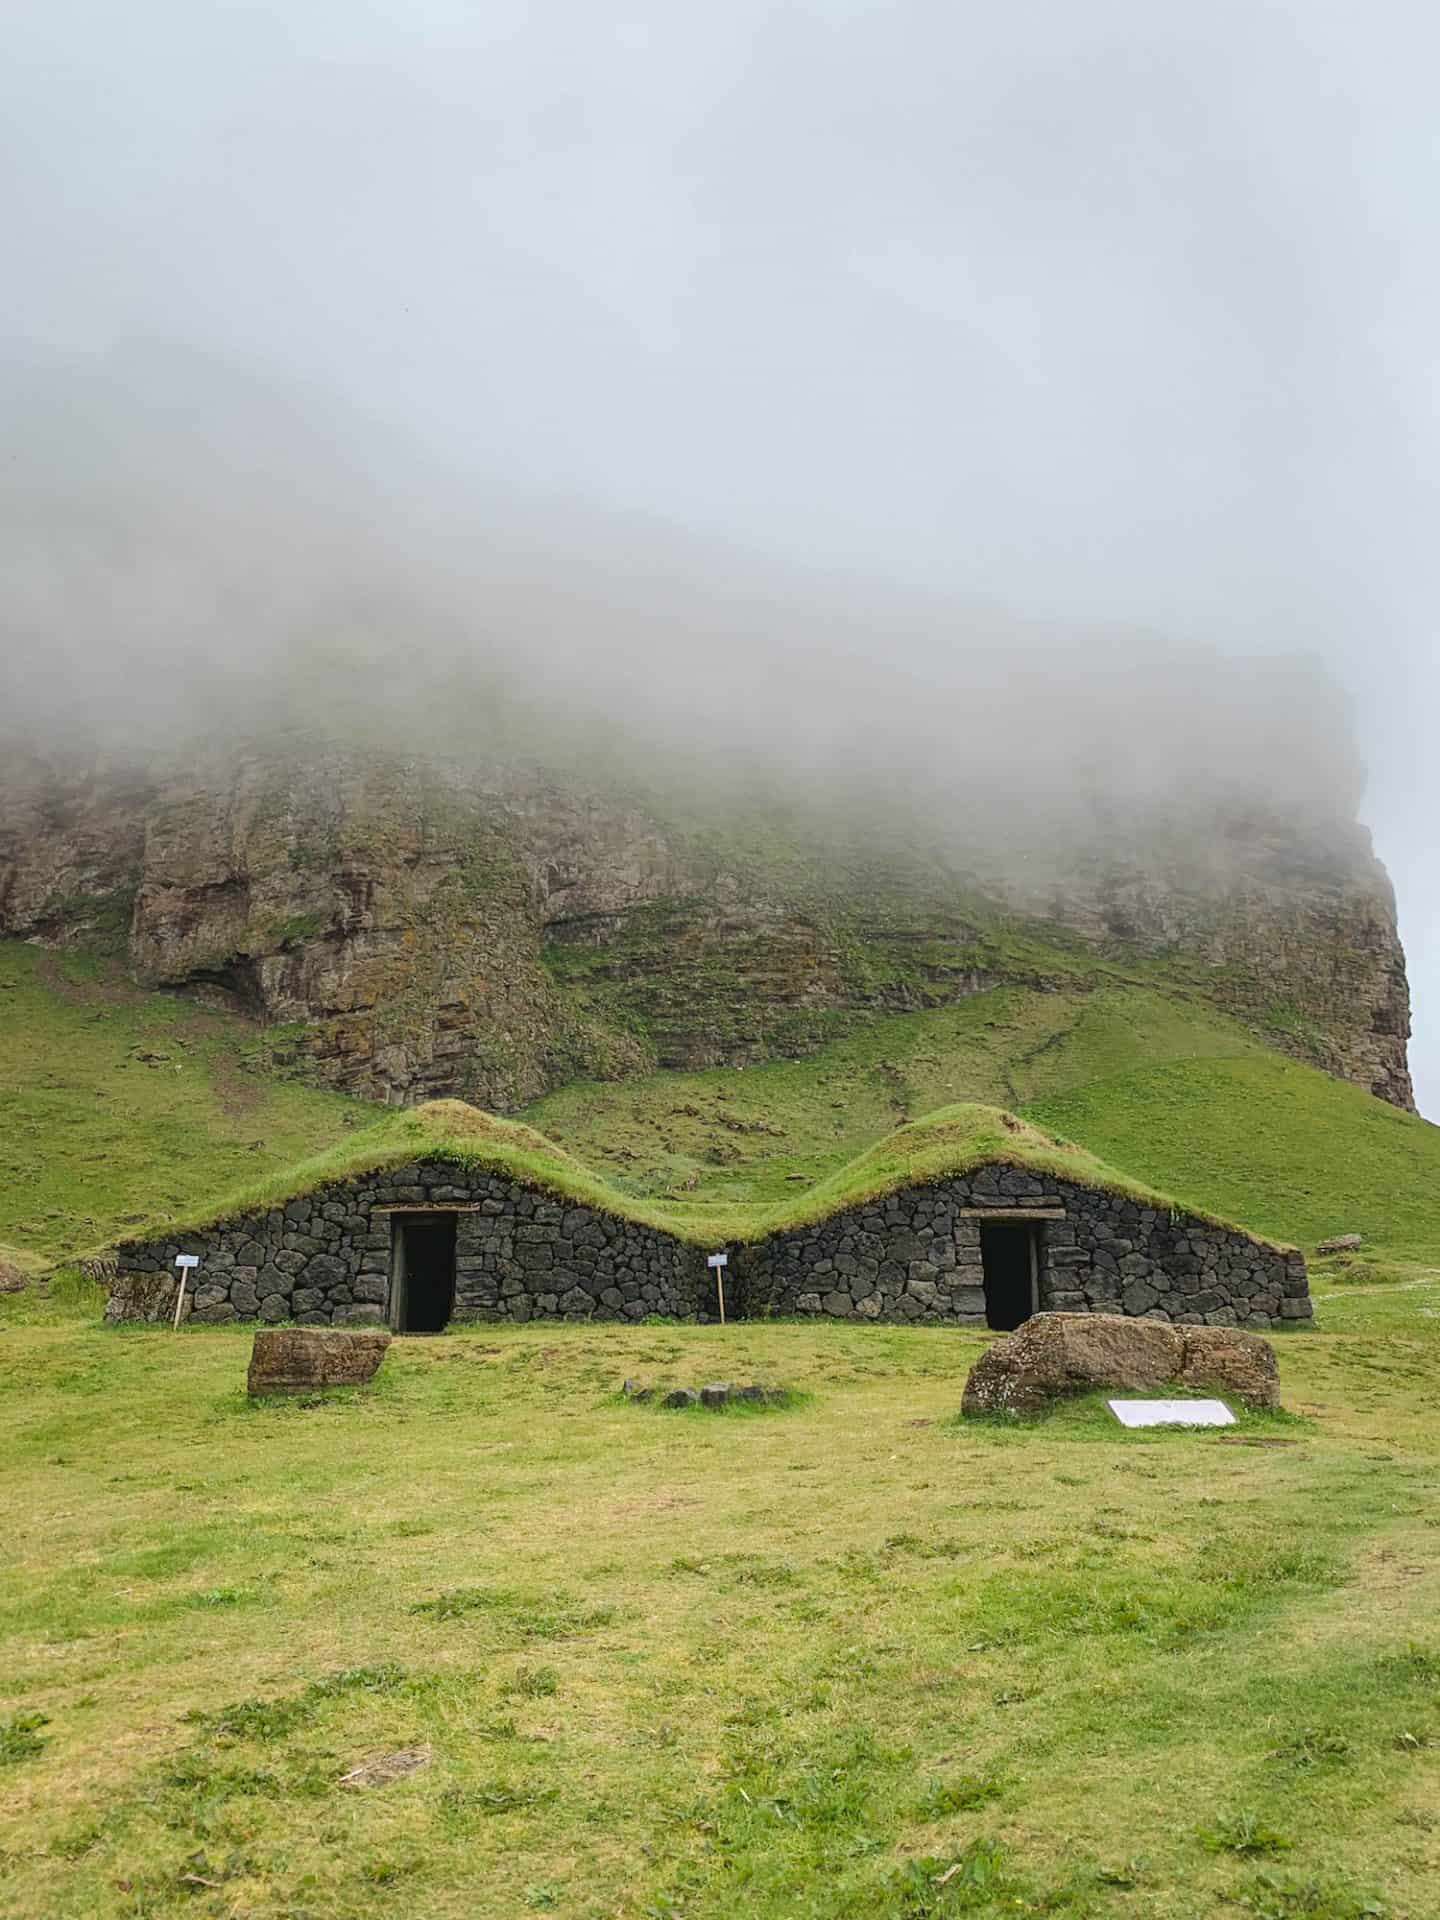 Westman Islands, also known as Vestmannaeyjabær, is a must-visit stop when visiting Iceland!